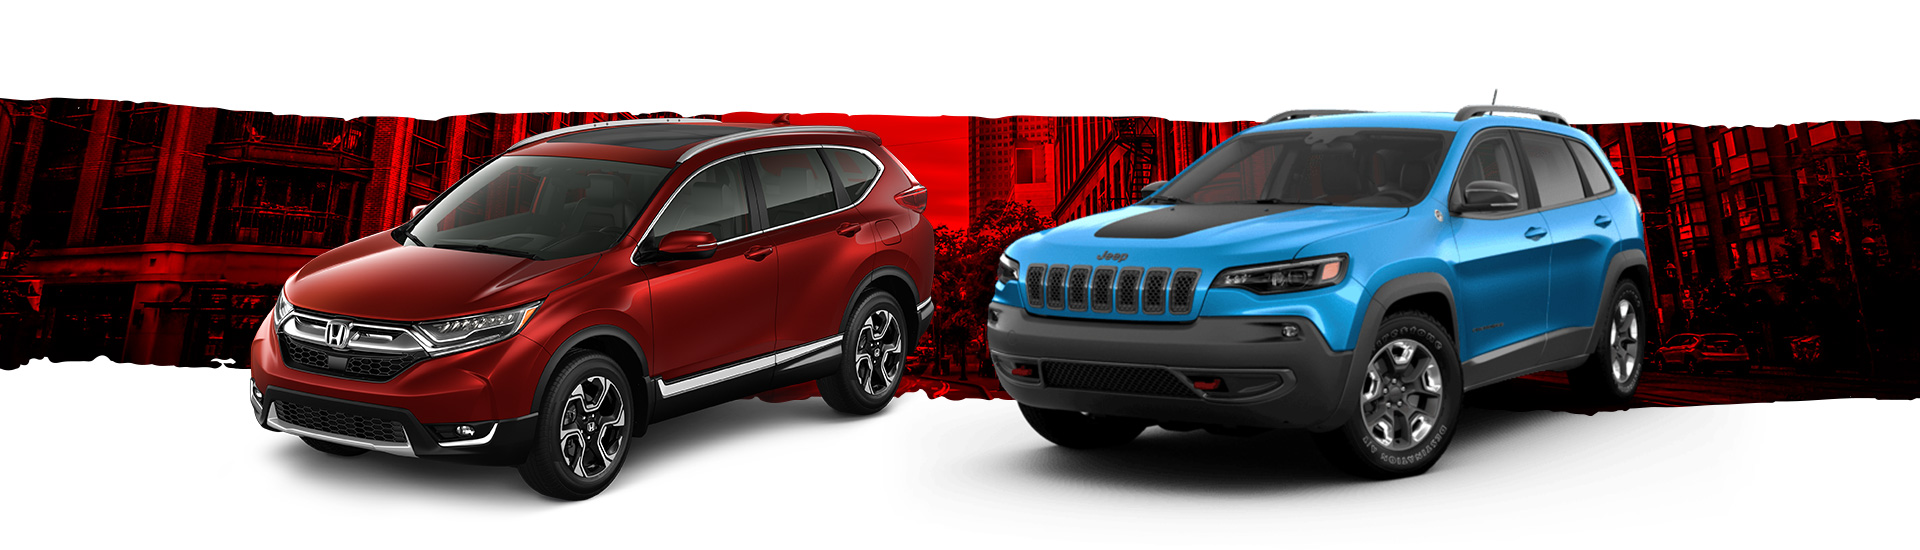 Jeep Cherokee vs Honda CR-V